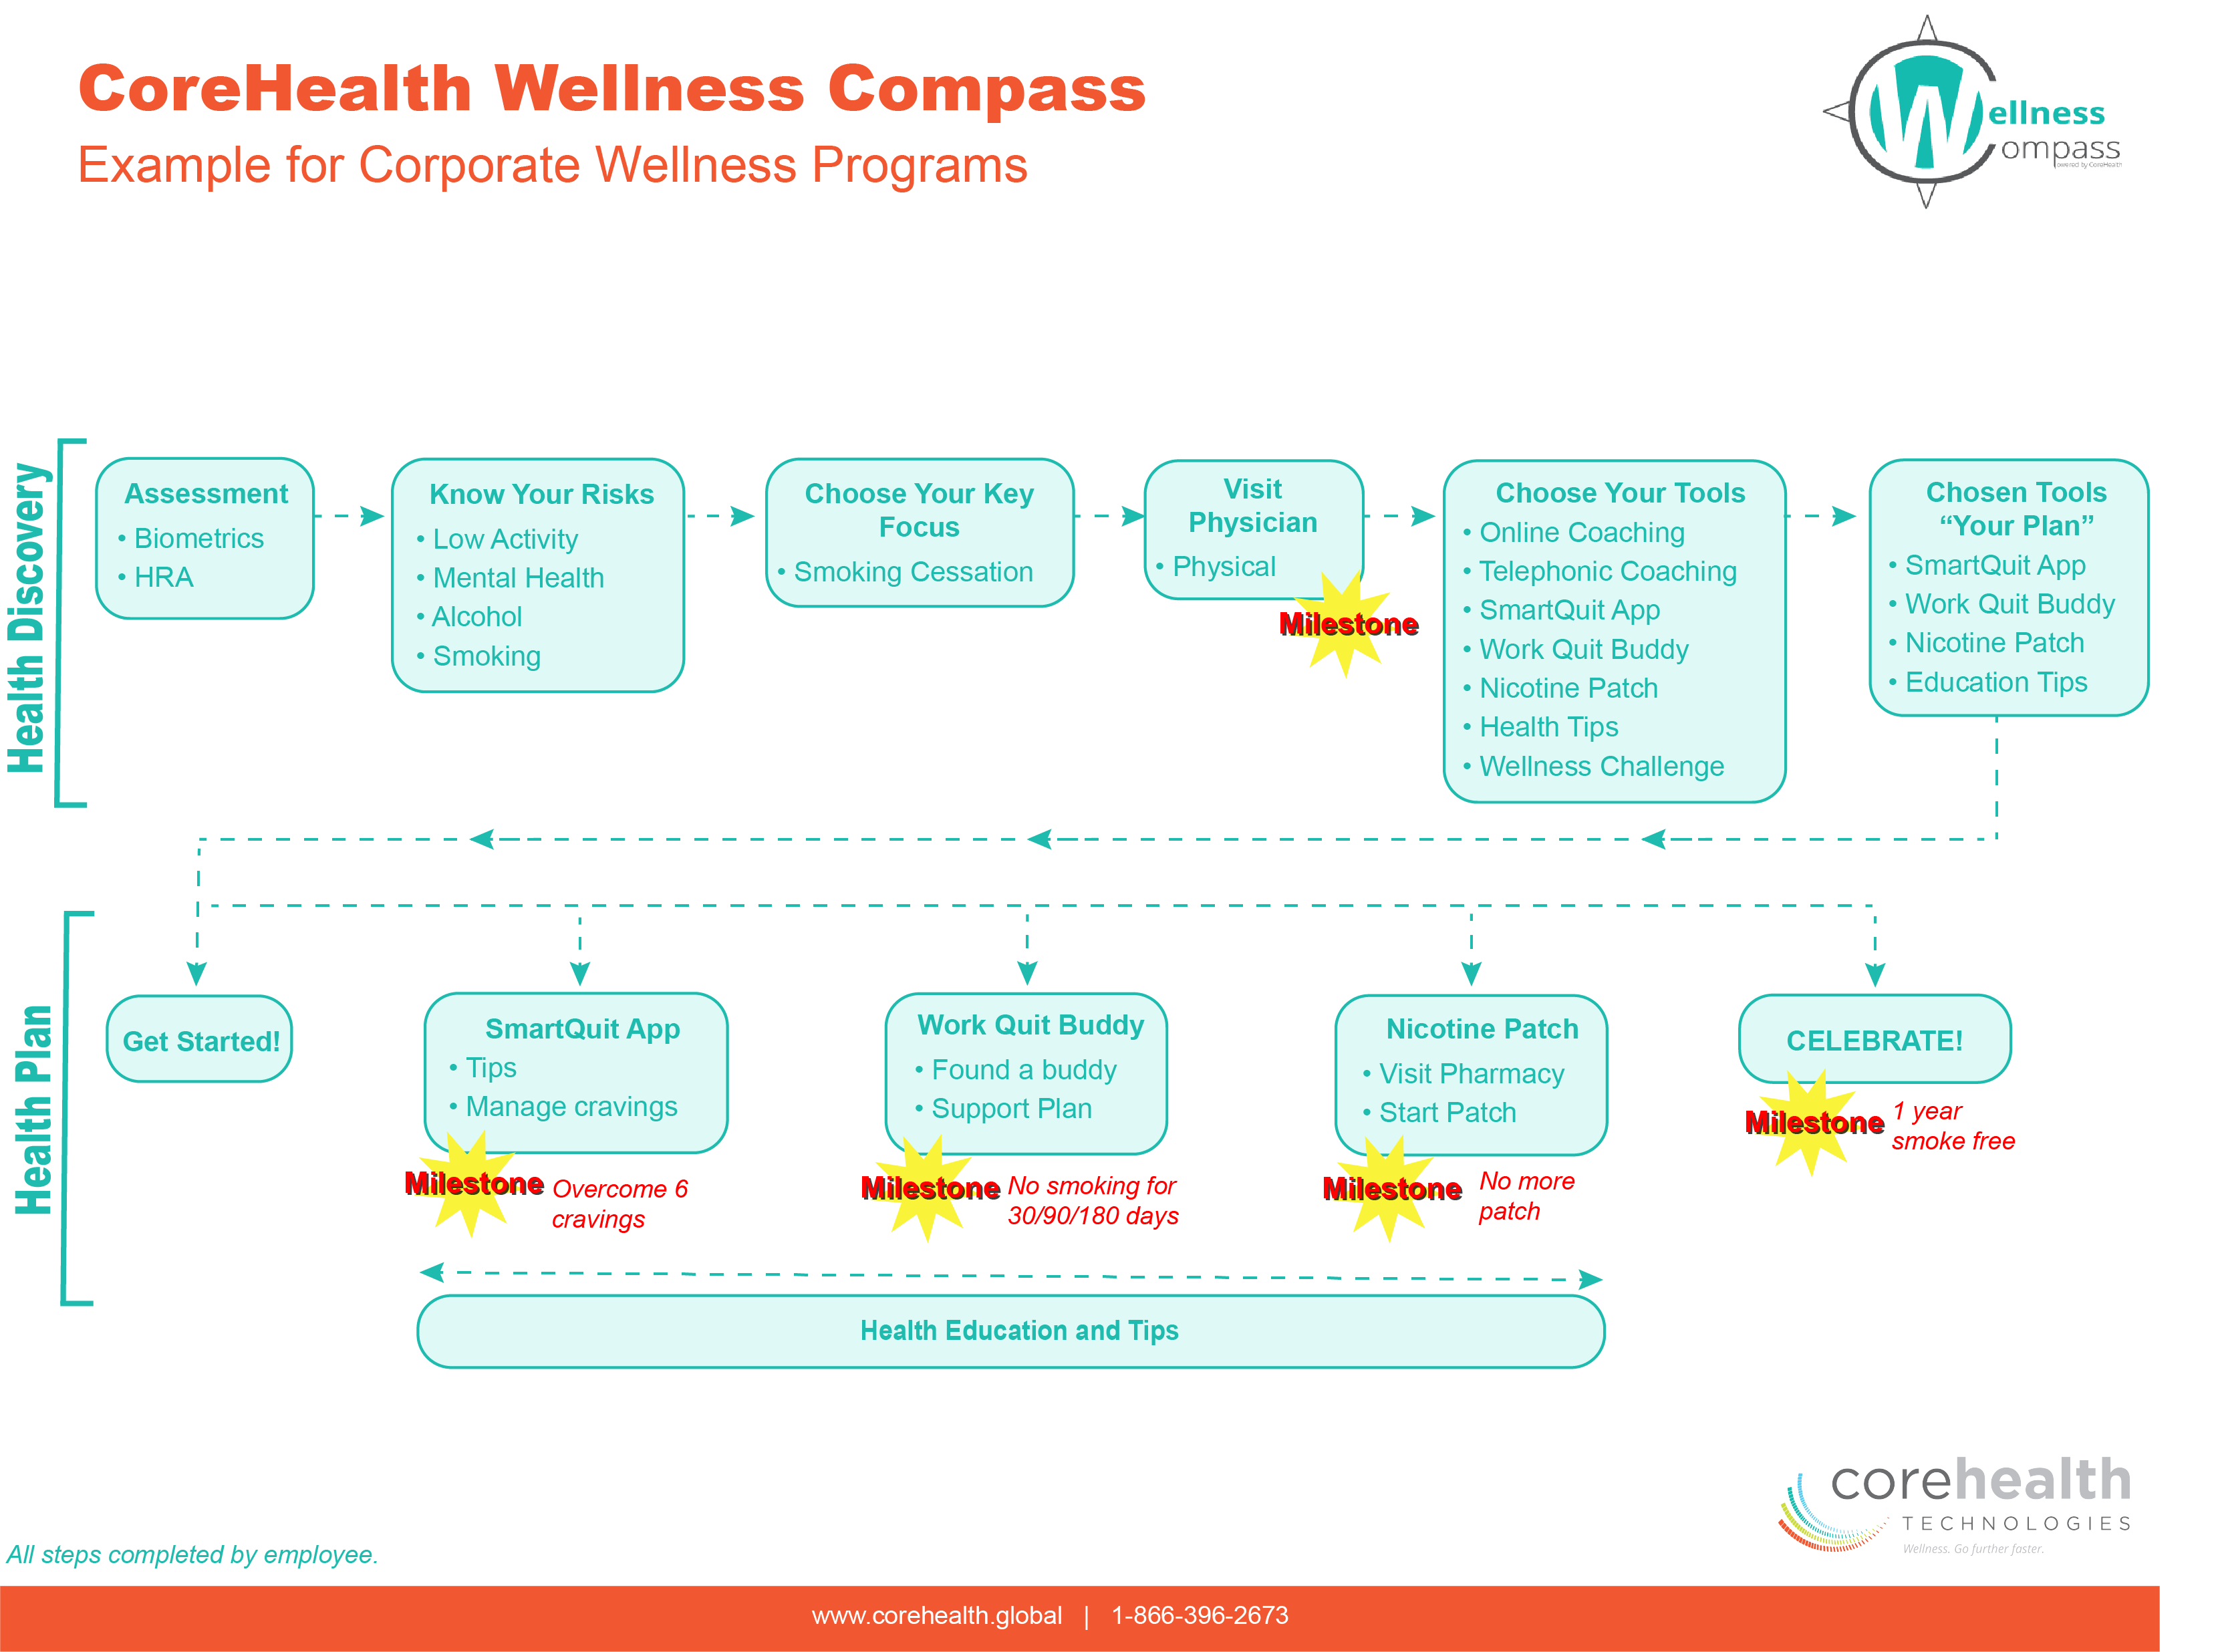 Wellness Compass - Corporate Wellness Example